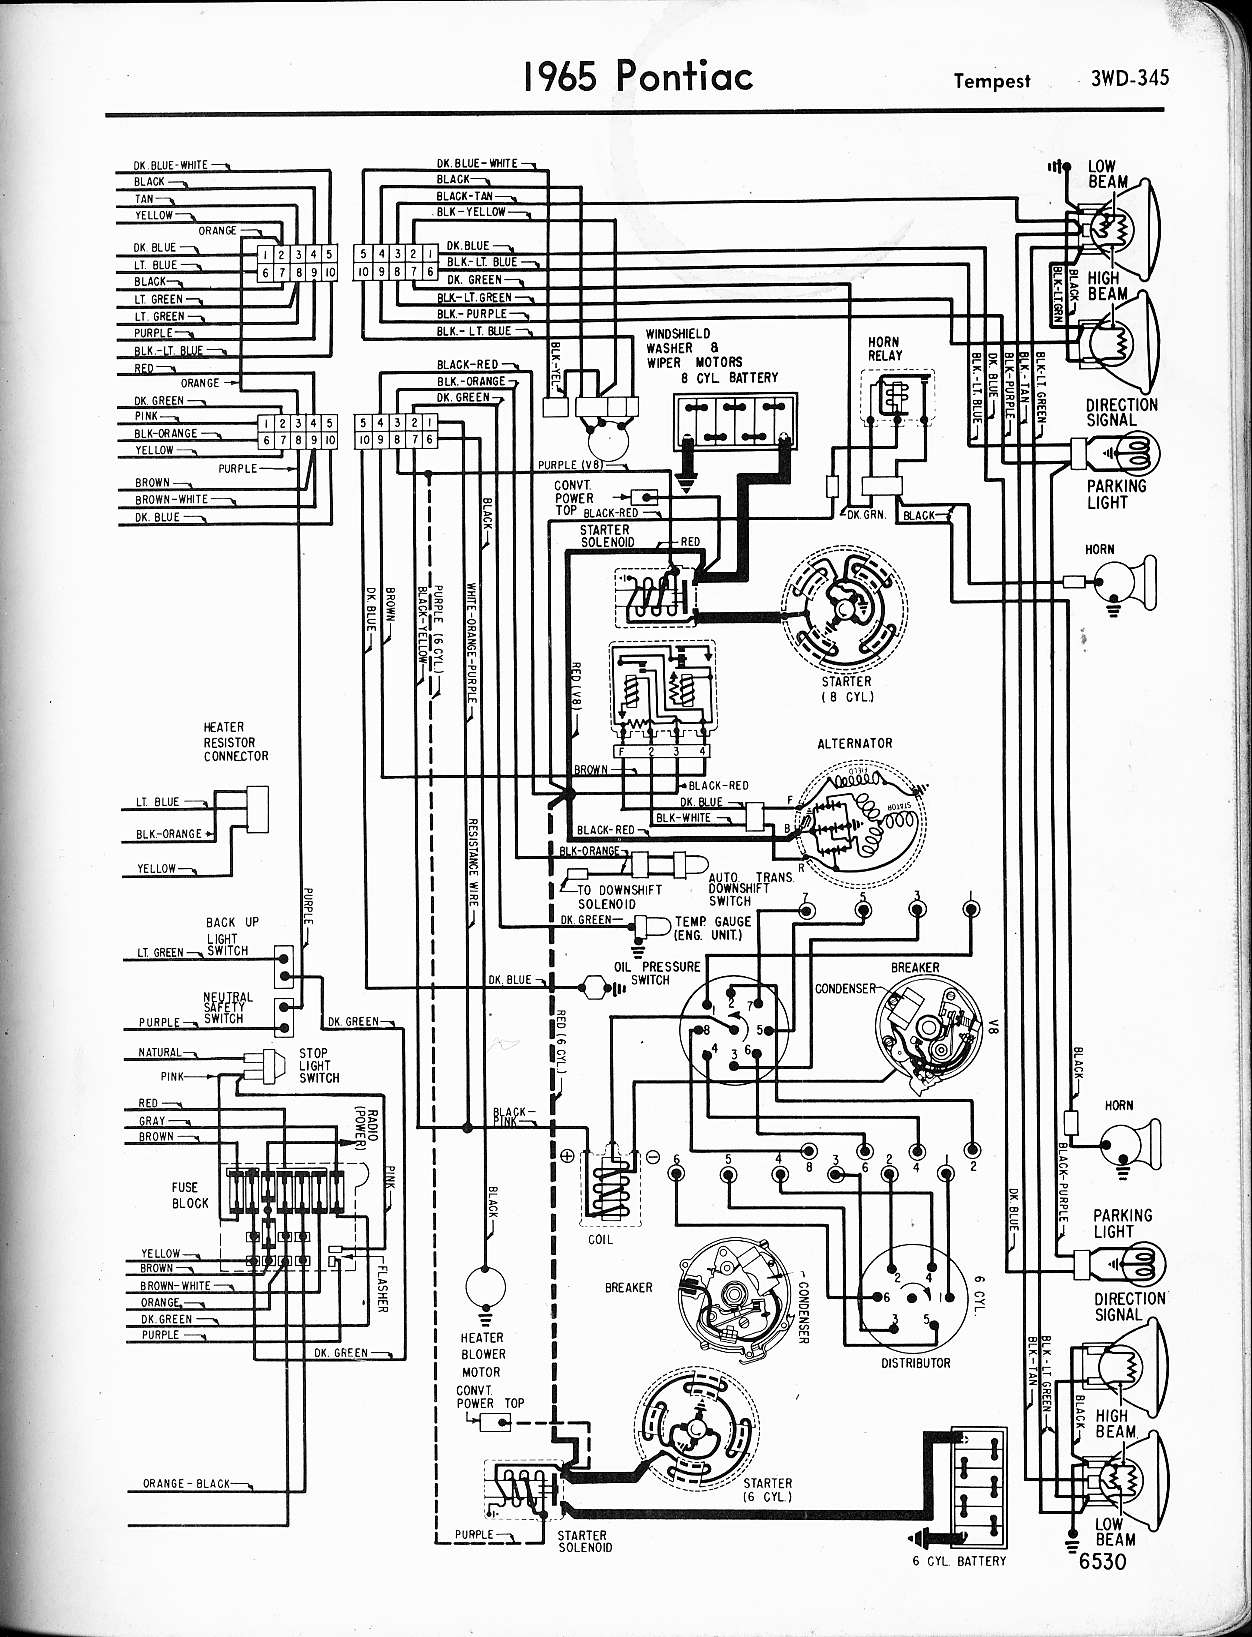 1971 Lemans Fuse Box | Wiring Diagram 2019 on steve mcqueen lemans, porsche lemans, nissan lemans,